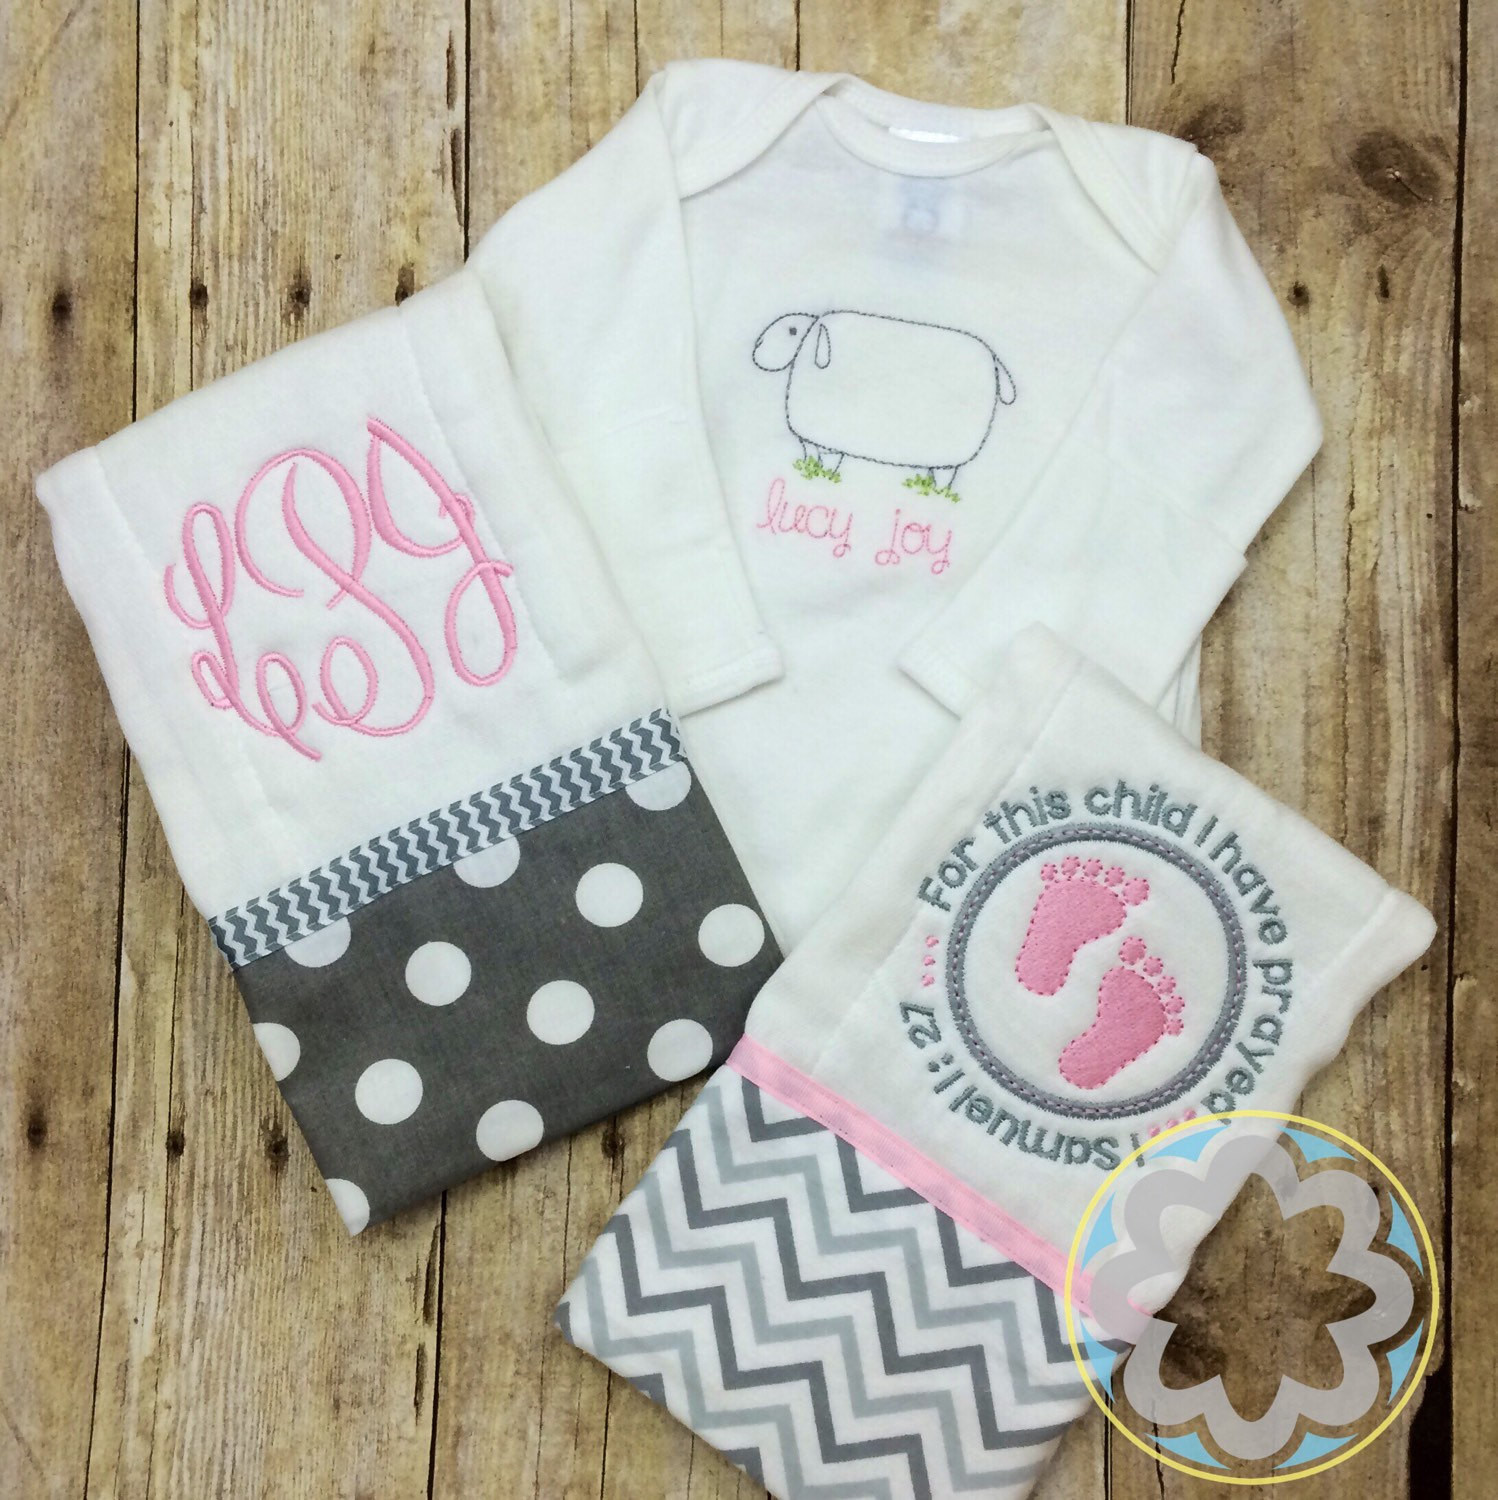 Christian Baby Gifts Personalized  Christian Baby Girl Gift Set Monogrammed Personalized Gown